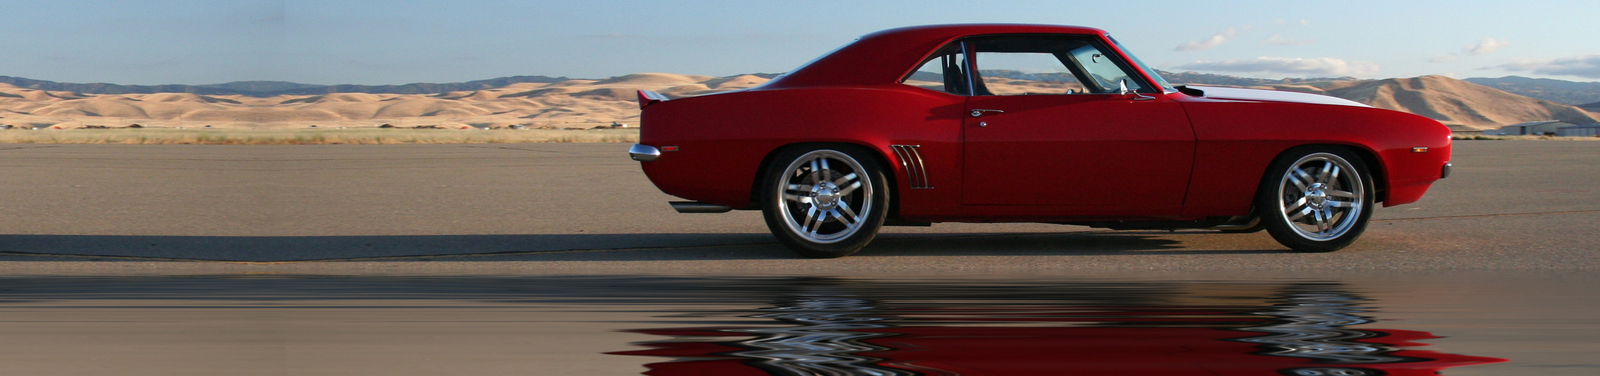 American Muscle Cars | eBay Motors